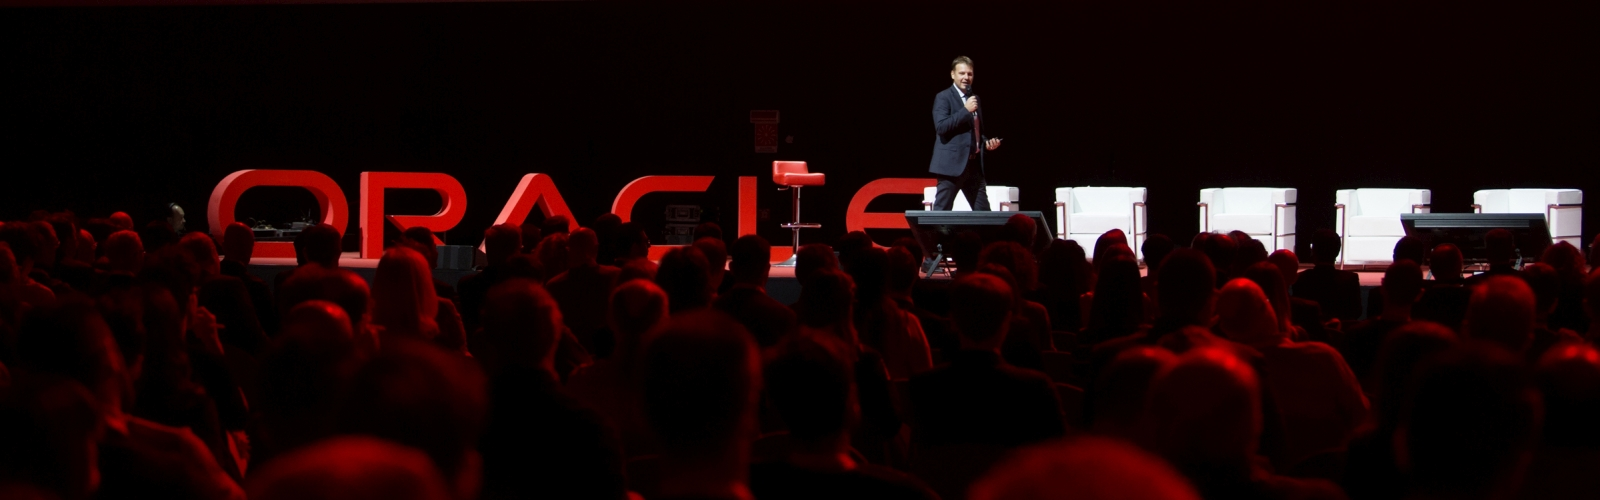 Oracle Cloud Day - Fabio Spoletini, Country Manager di Oracle Italy